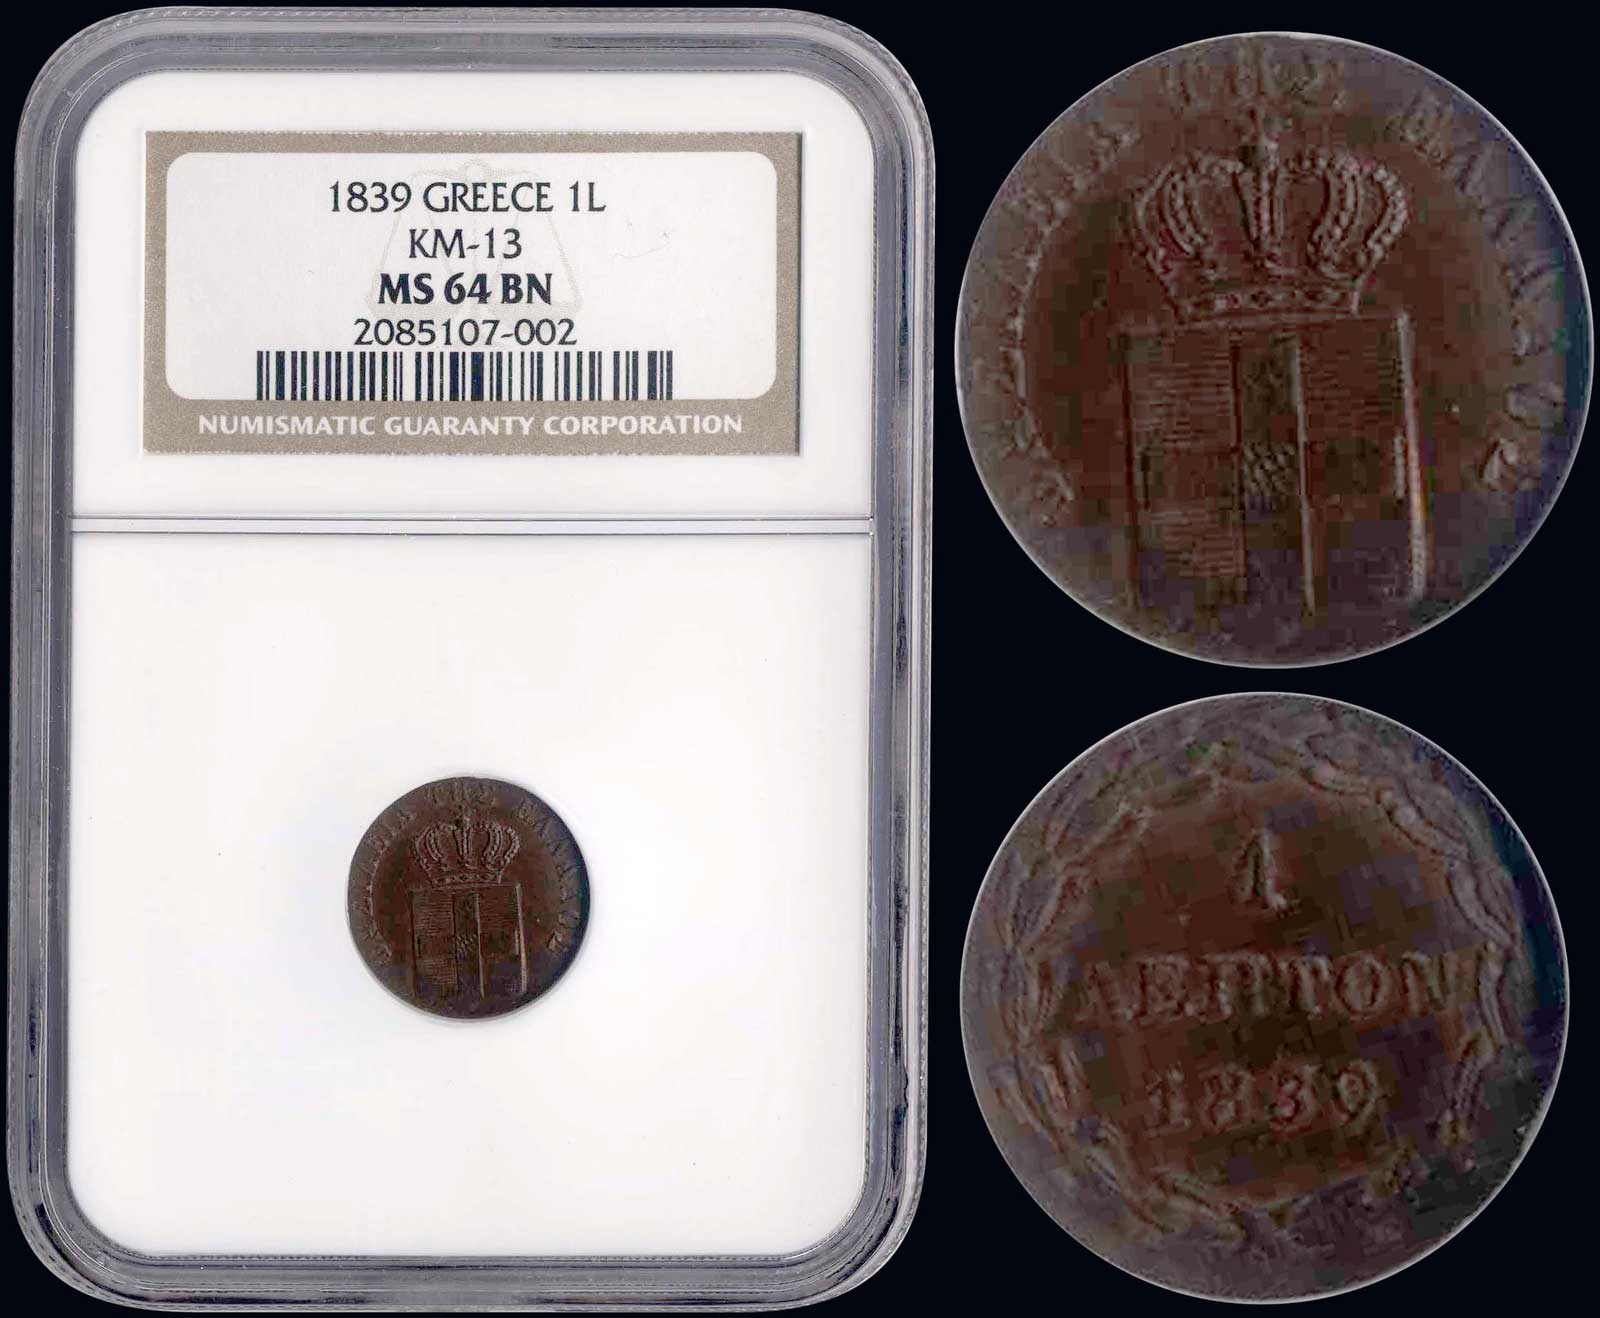 Lot 9061 - GREECE-  COINS & TOKENS king otto -  A. Karamitsos Public & LIVE Bid Auction 610 Coins, Medals & Banknotes